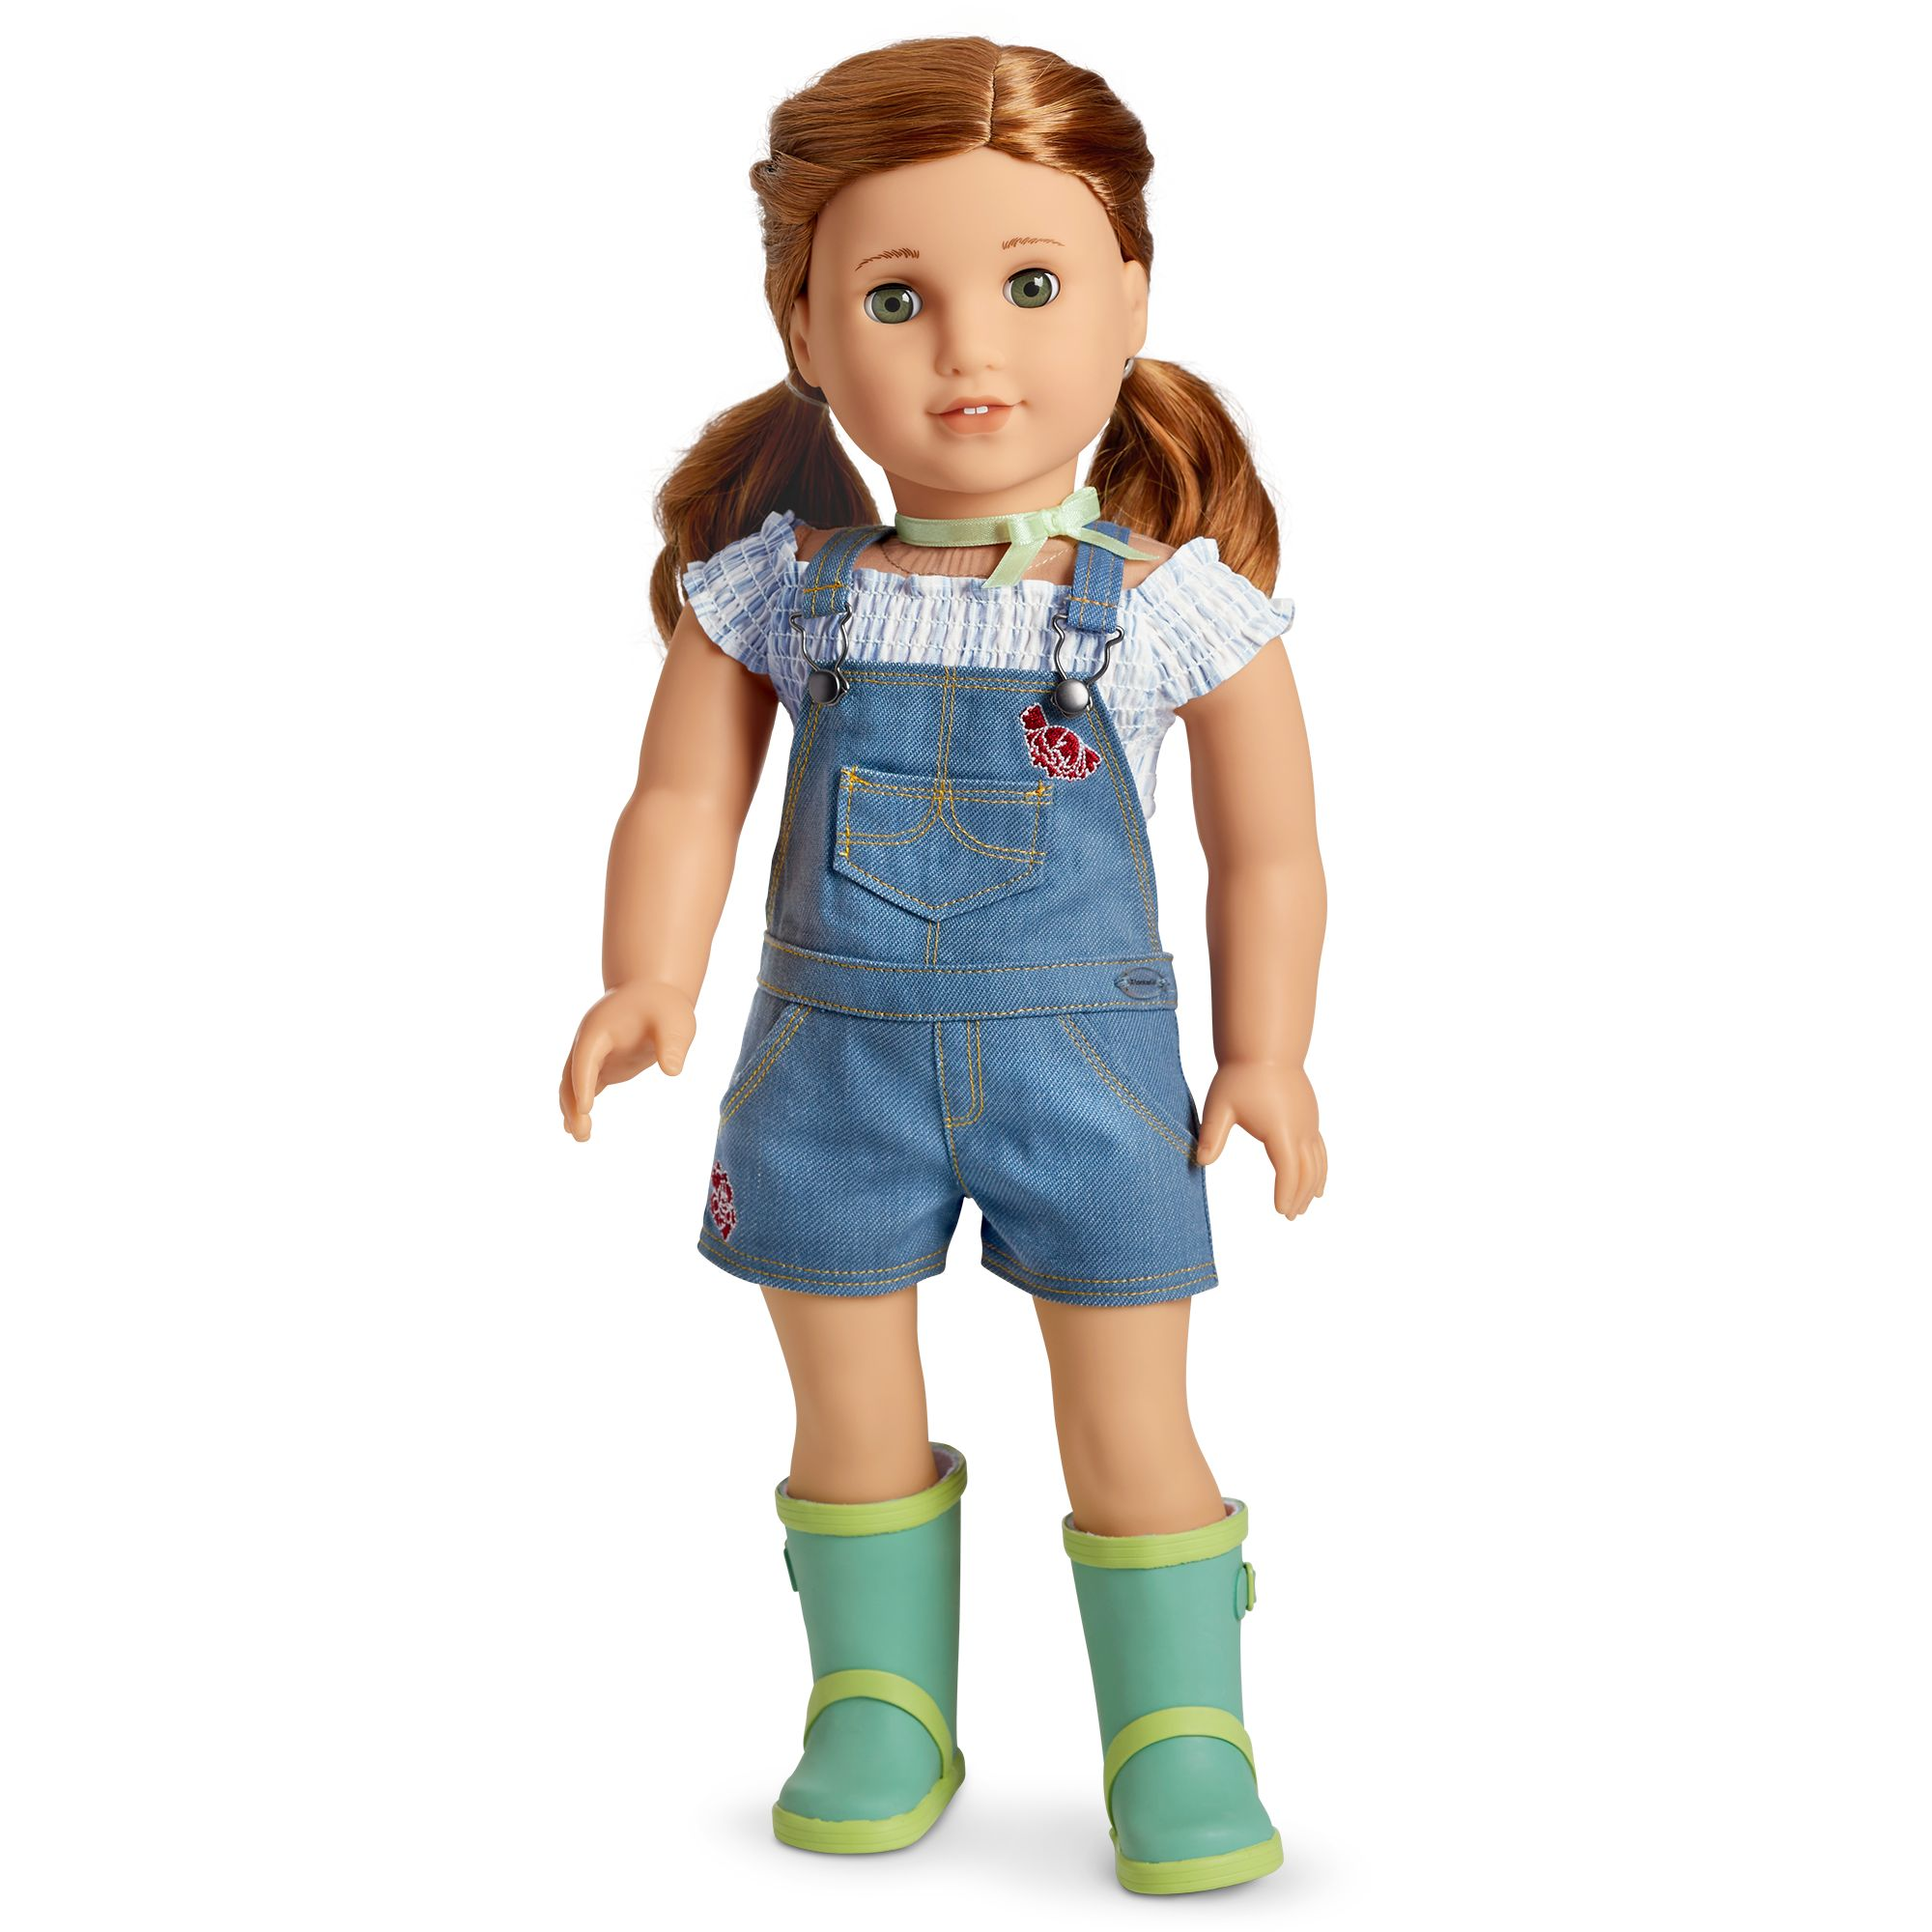 Blaire S Gardening Outfit American Girl Wiki Fandom